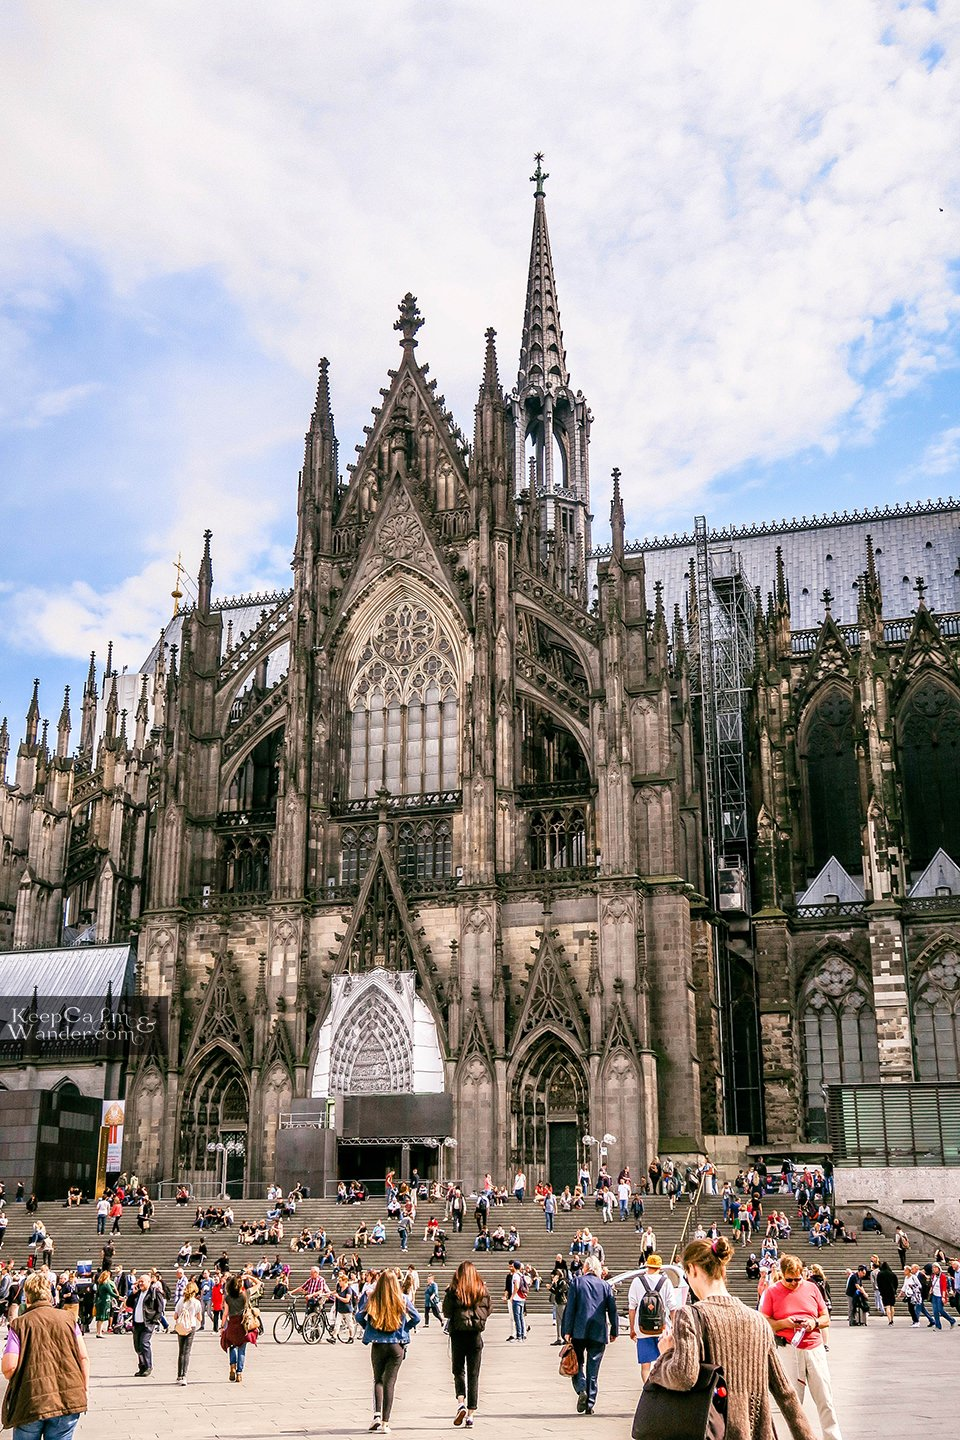 The Facade of Koln Cathedral (Germany). Cologne Travel Blog